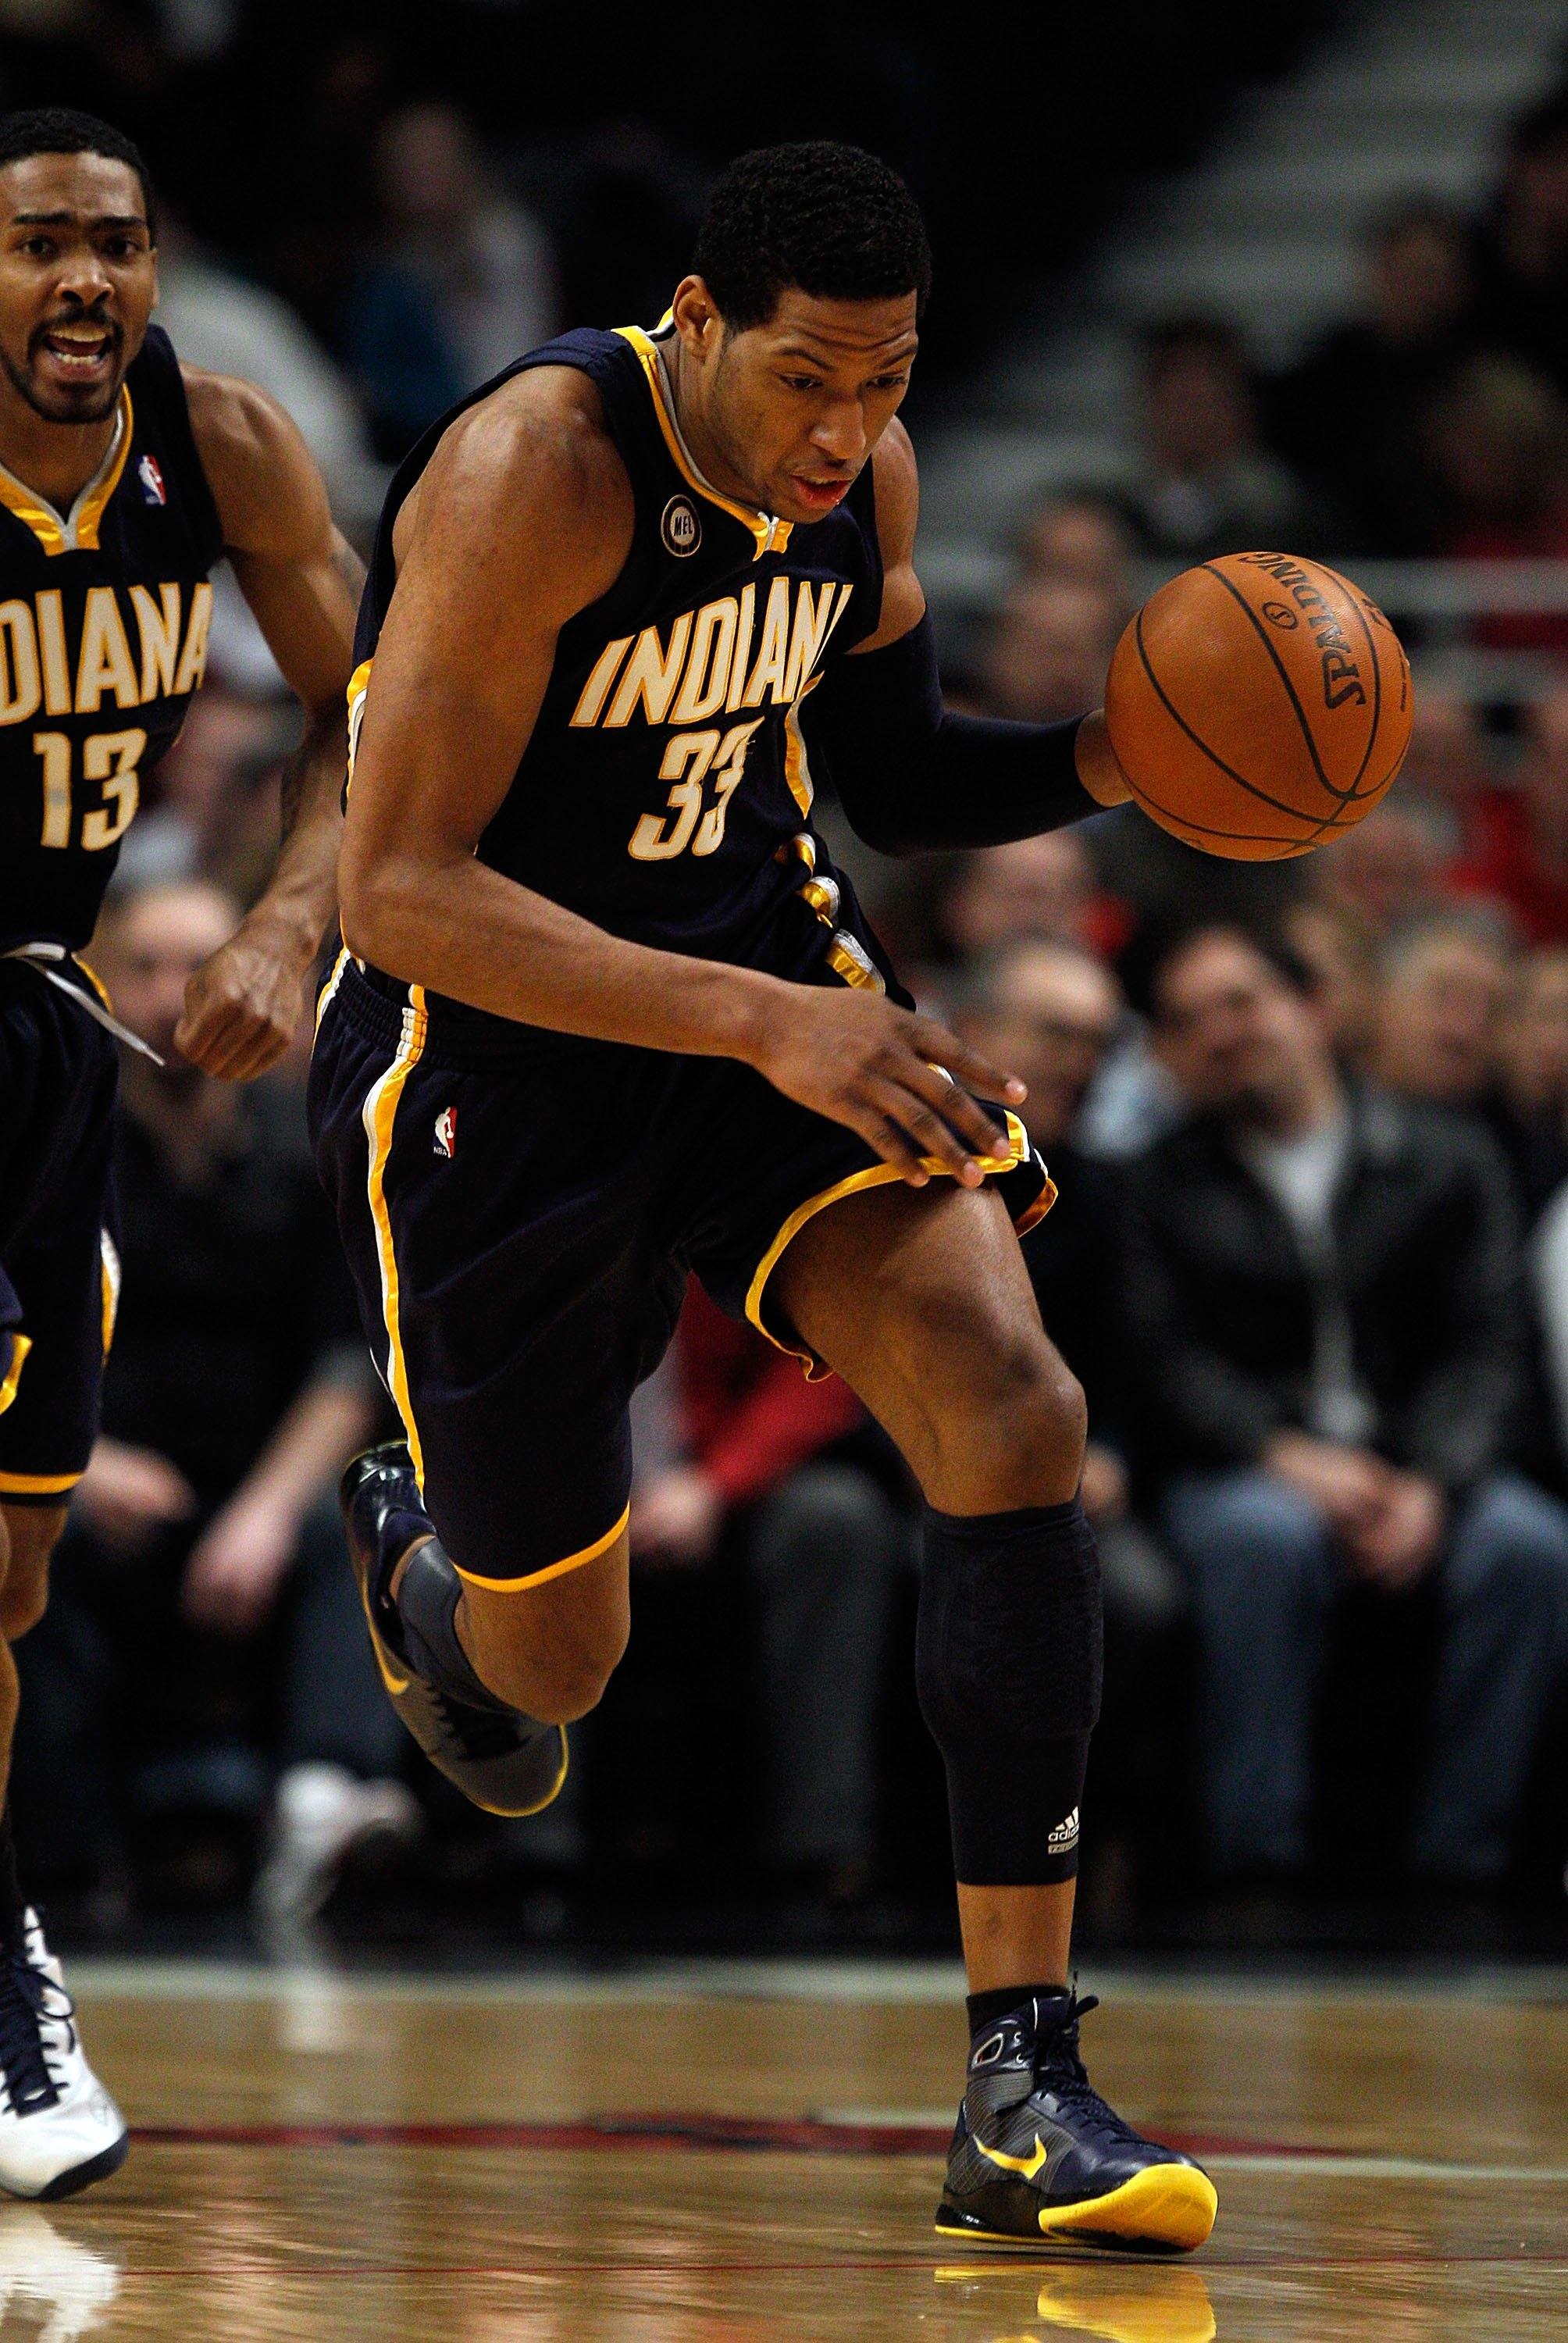 CHICAGO - FEBRUARY 24: Danny Granger #33 of the Indiana Pacers runs up the court against the Chicago Bulls at the United Center on February 24, 2010 in Chicago, Illinois. The Bulls defeated the Pacers 120-110. NOTE TO USER: User expressly acknowledges and